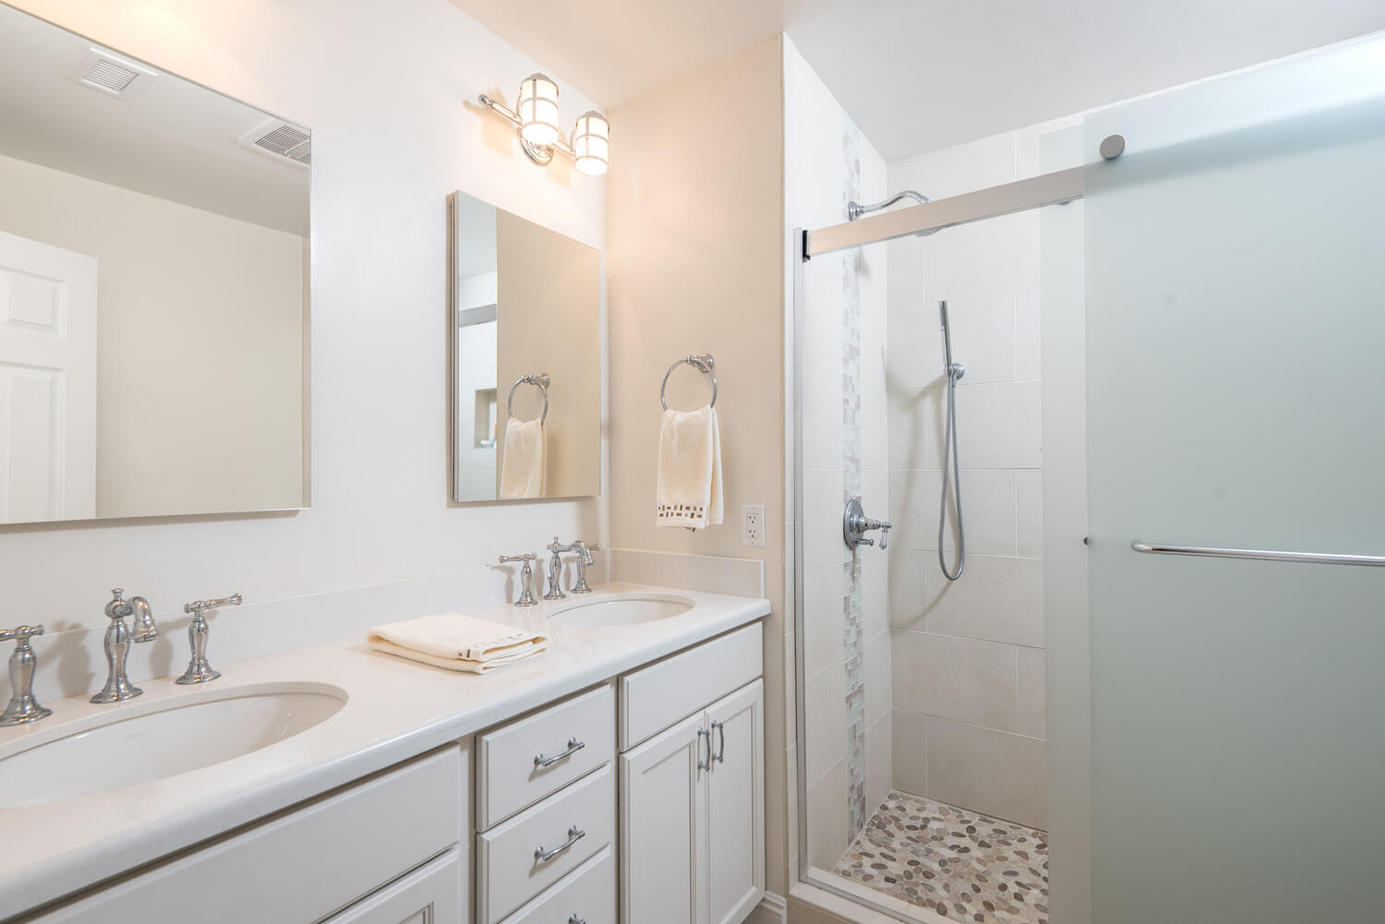 Do I Need A Permit To Remodel My Bathroom Classic Home Improvements - I need to redo my bathroom